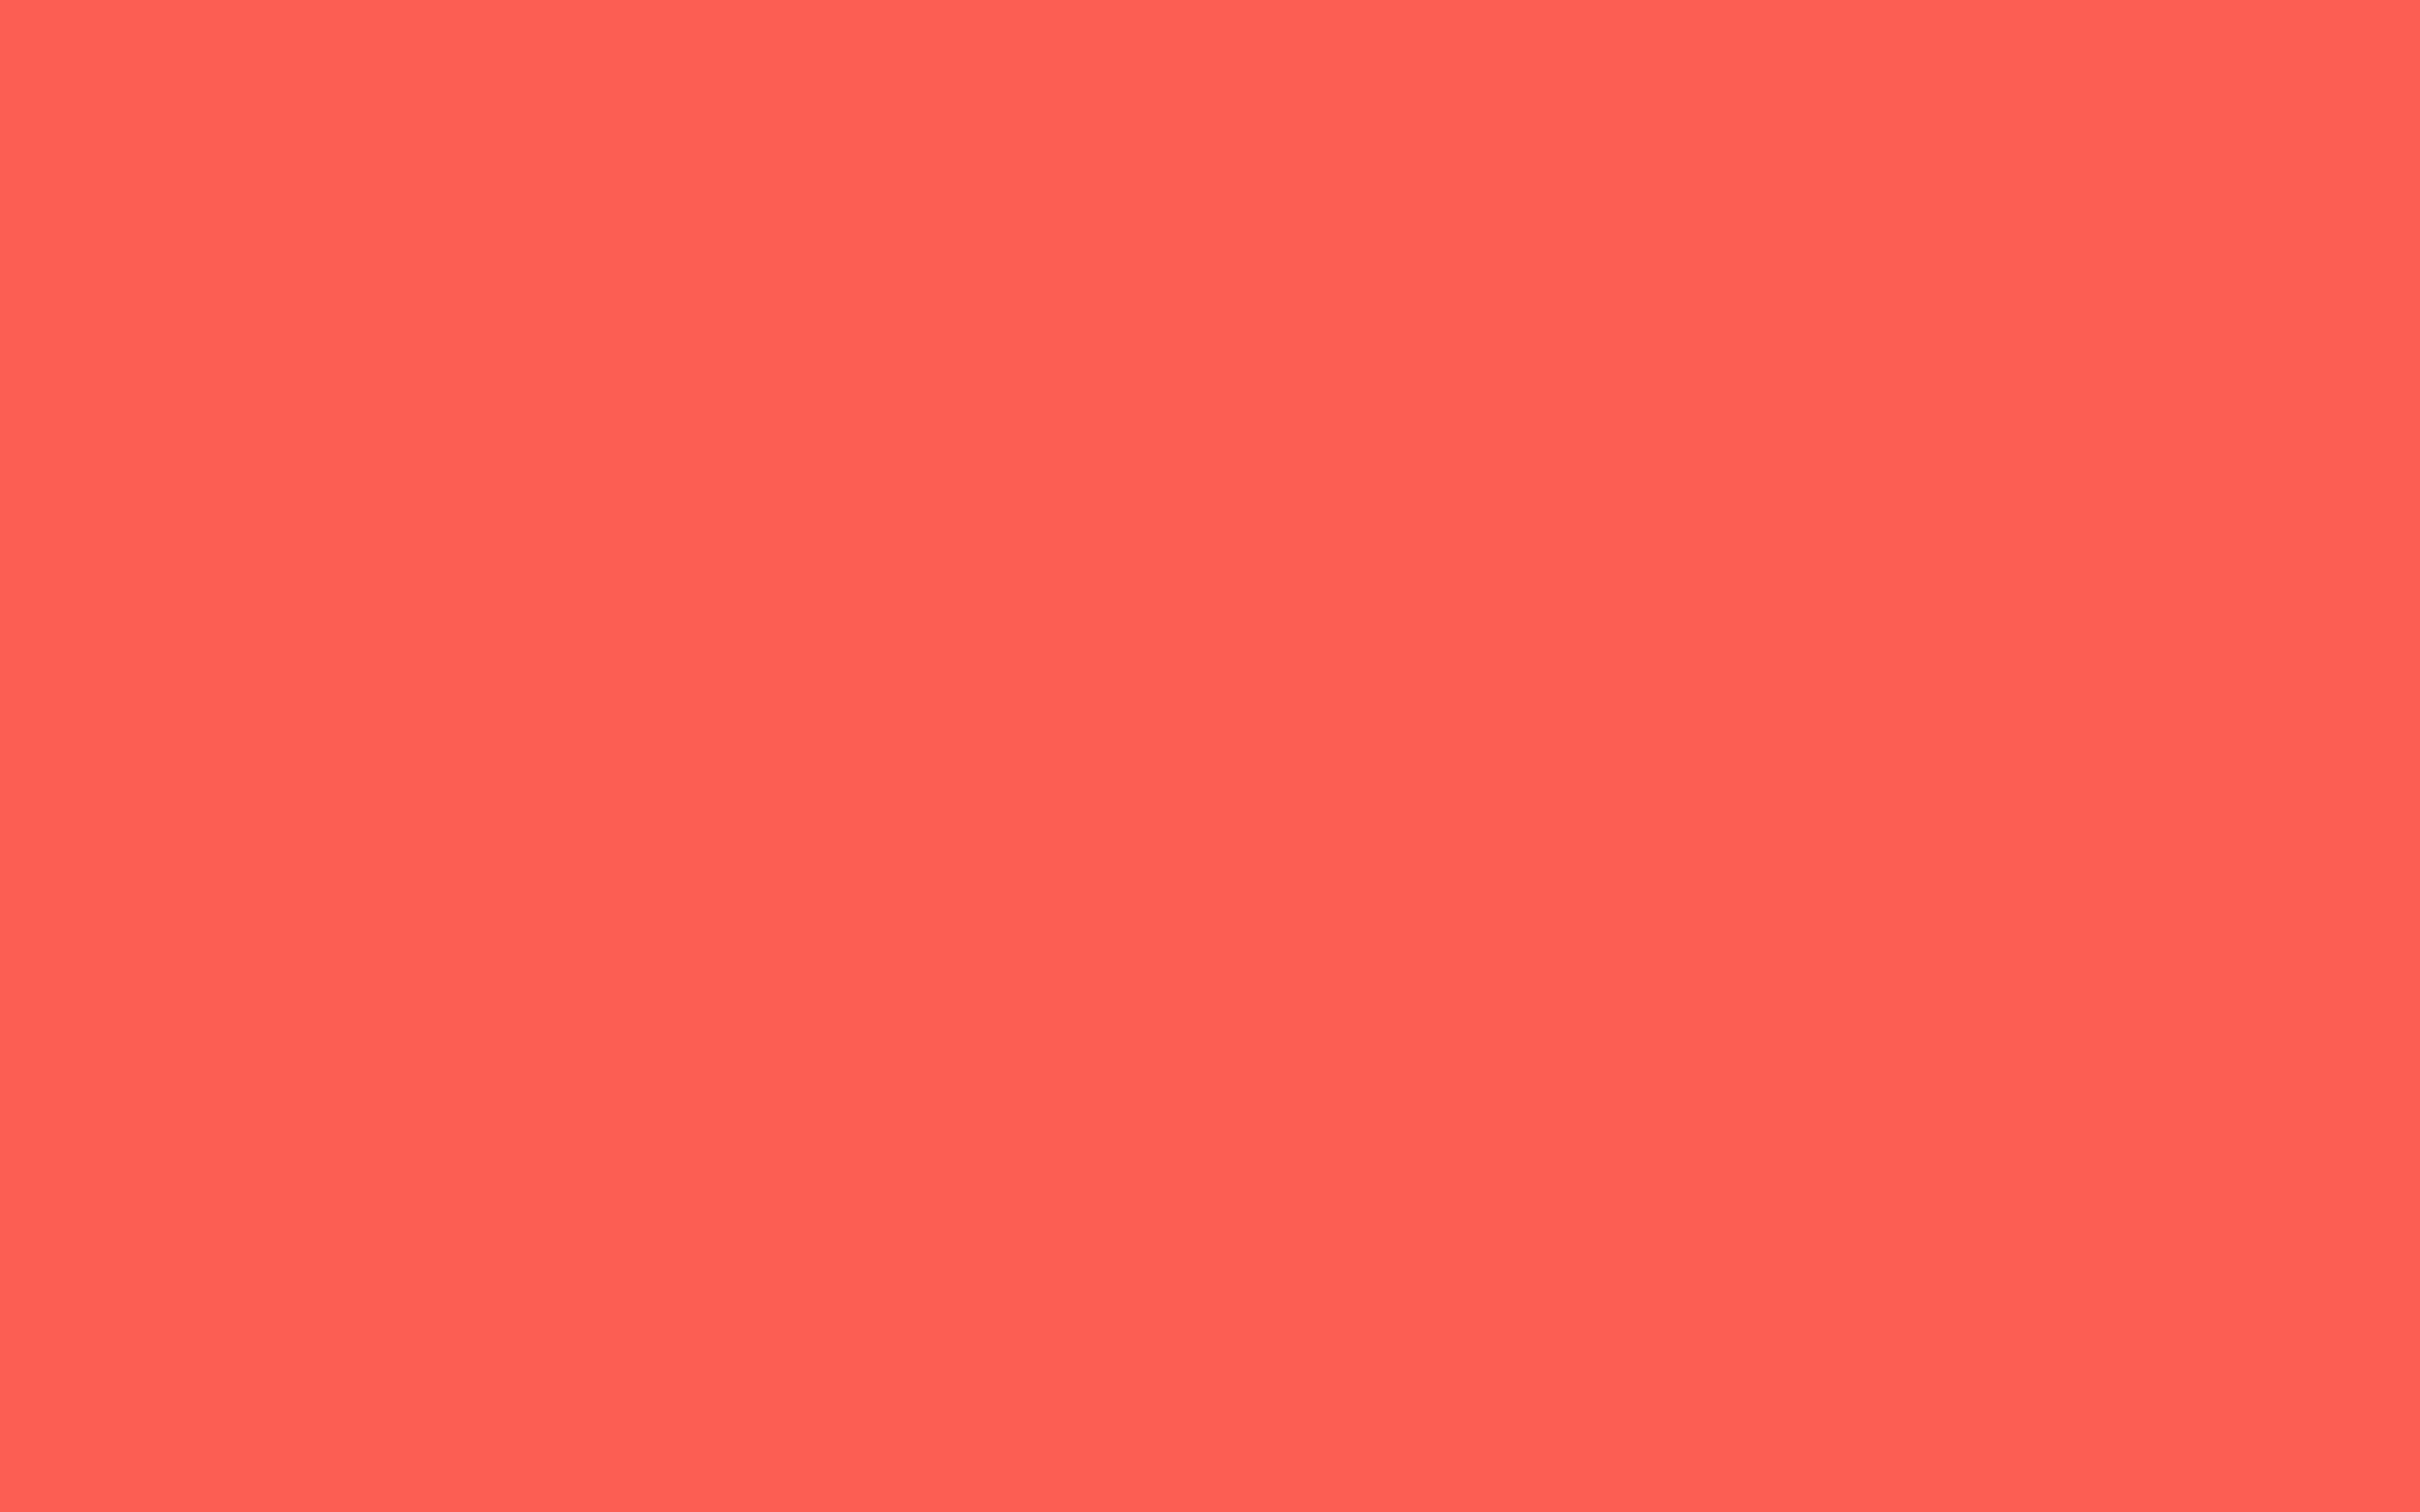 pink and orange backgrounds 47 images